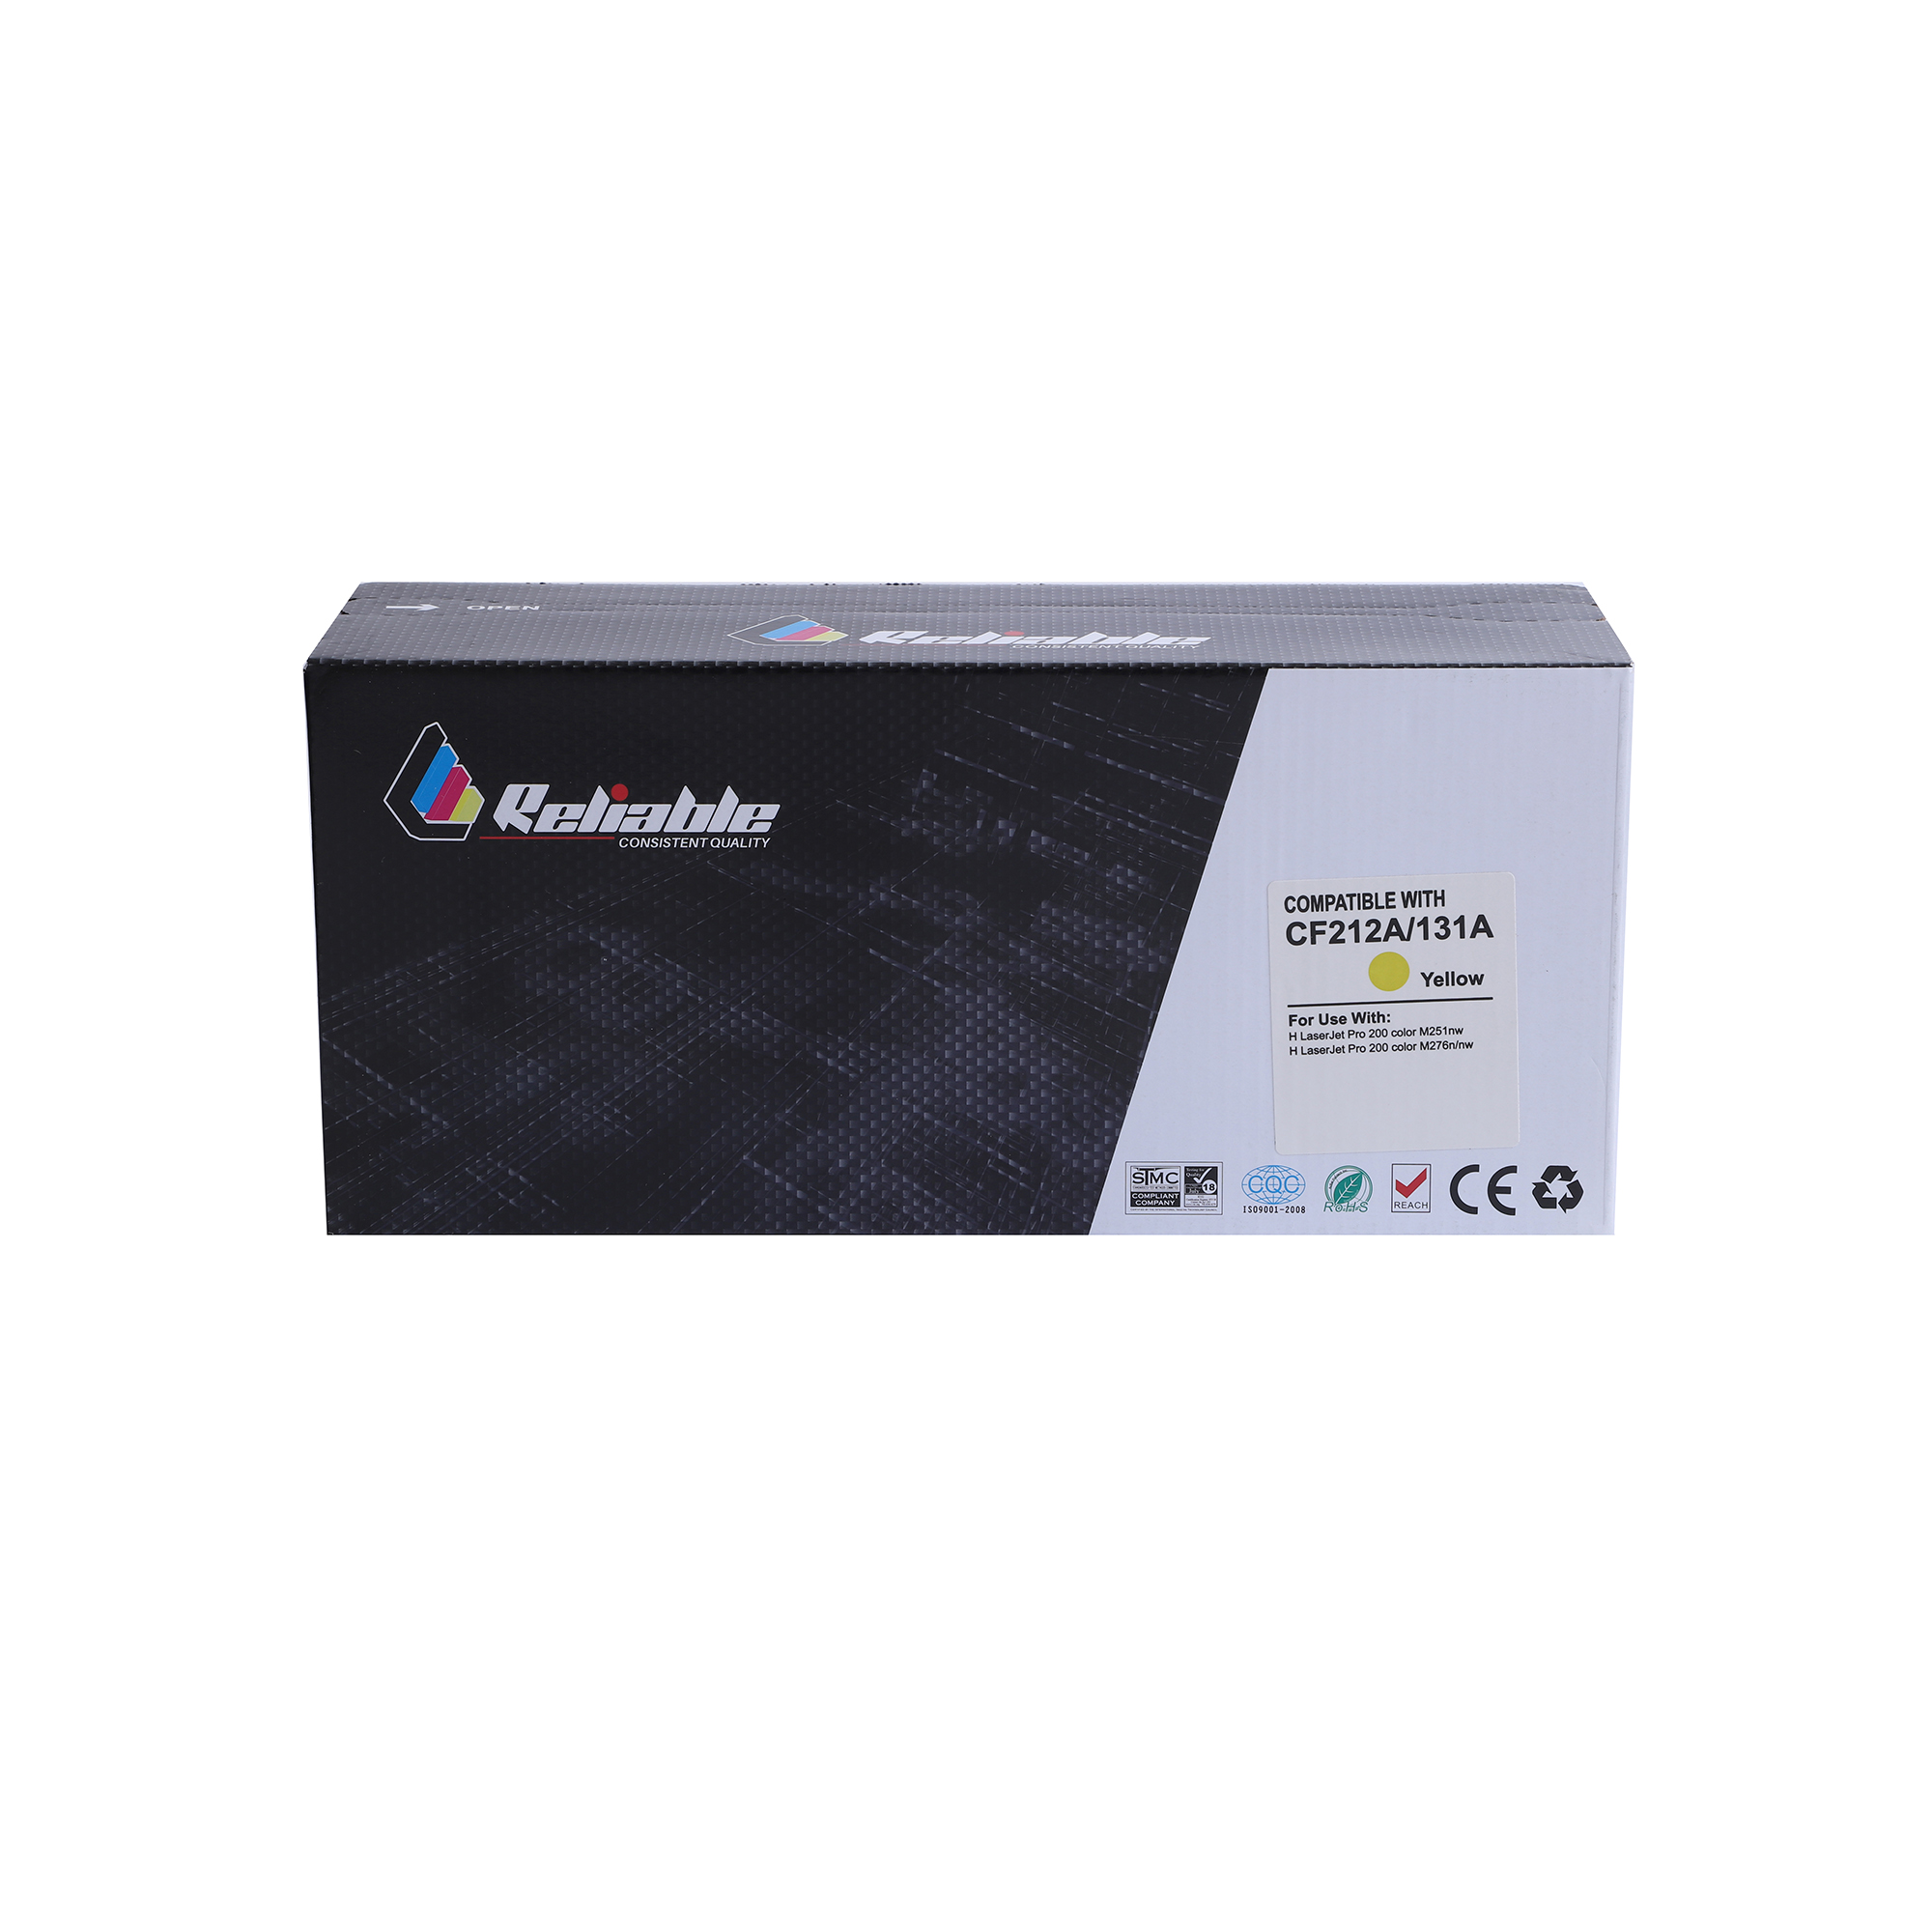 Reliable 125A (CB542A) / 131A (CF212A) / 128A (CE322A) Compatible Toner Cartridge - Yellow